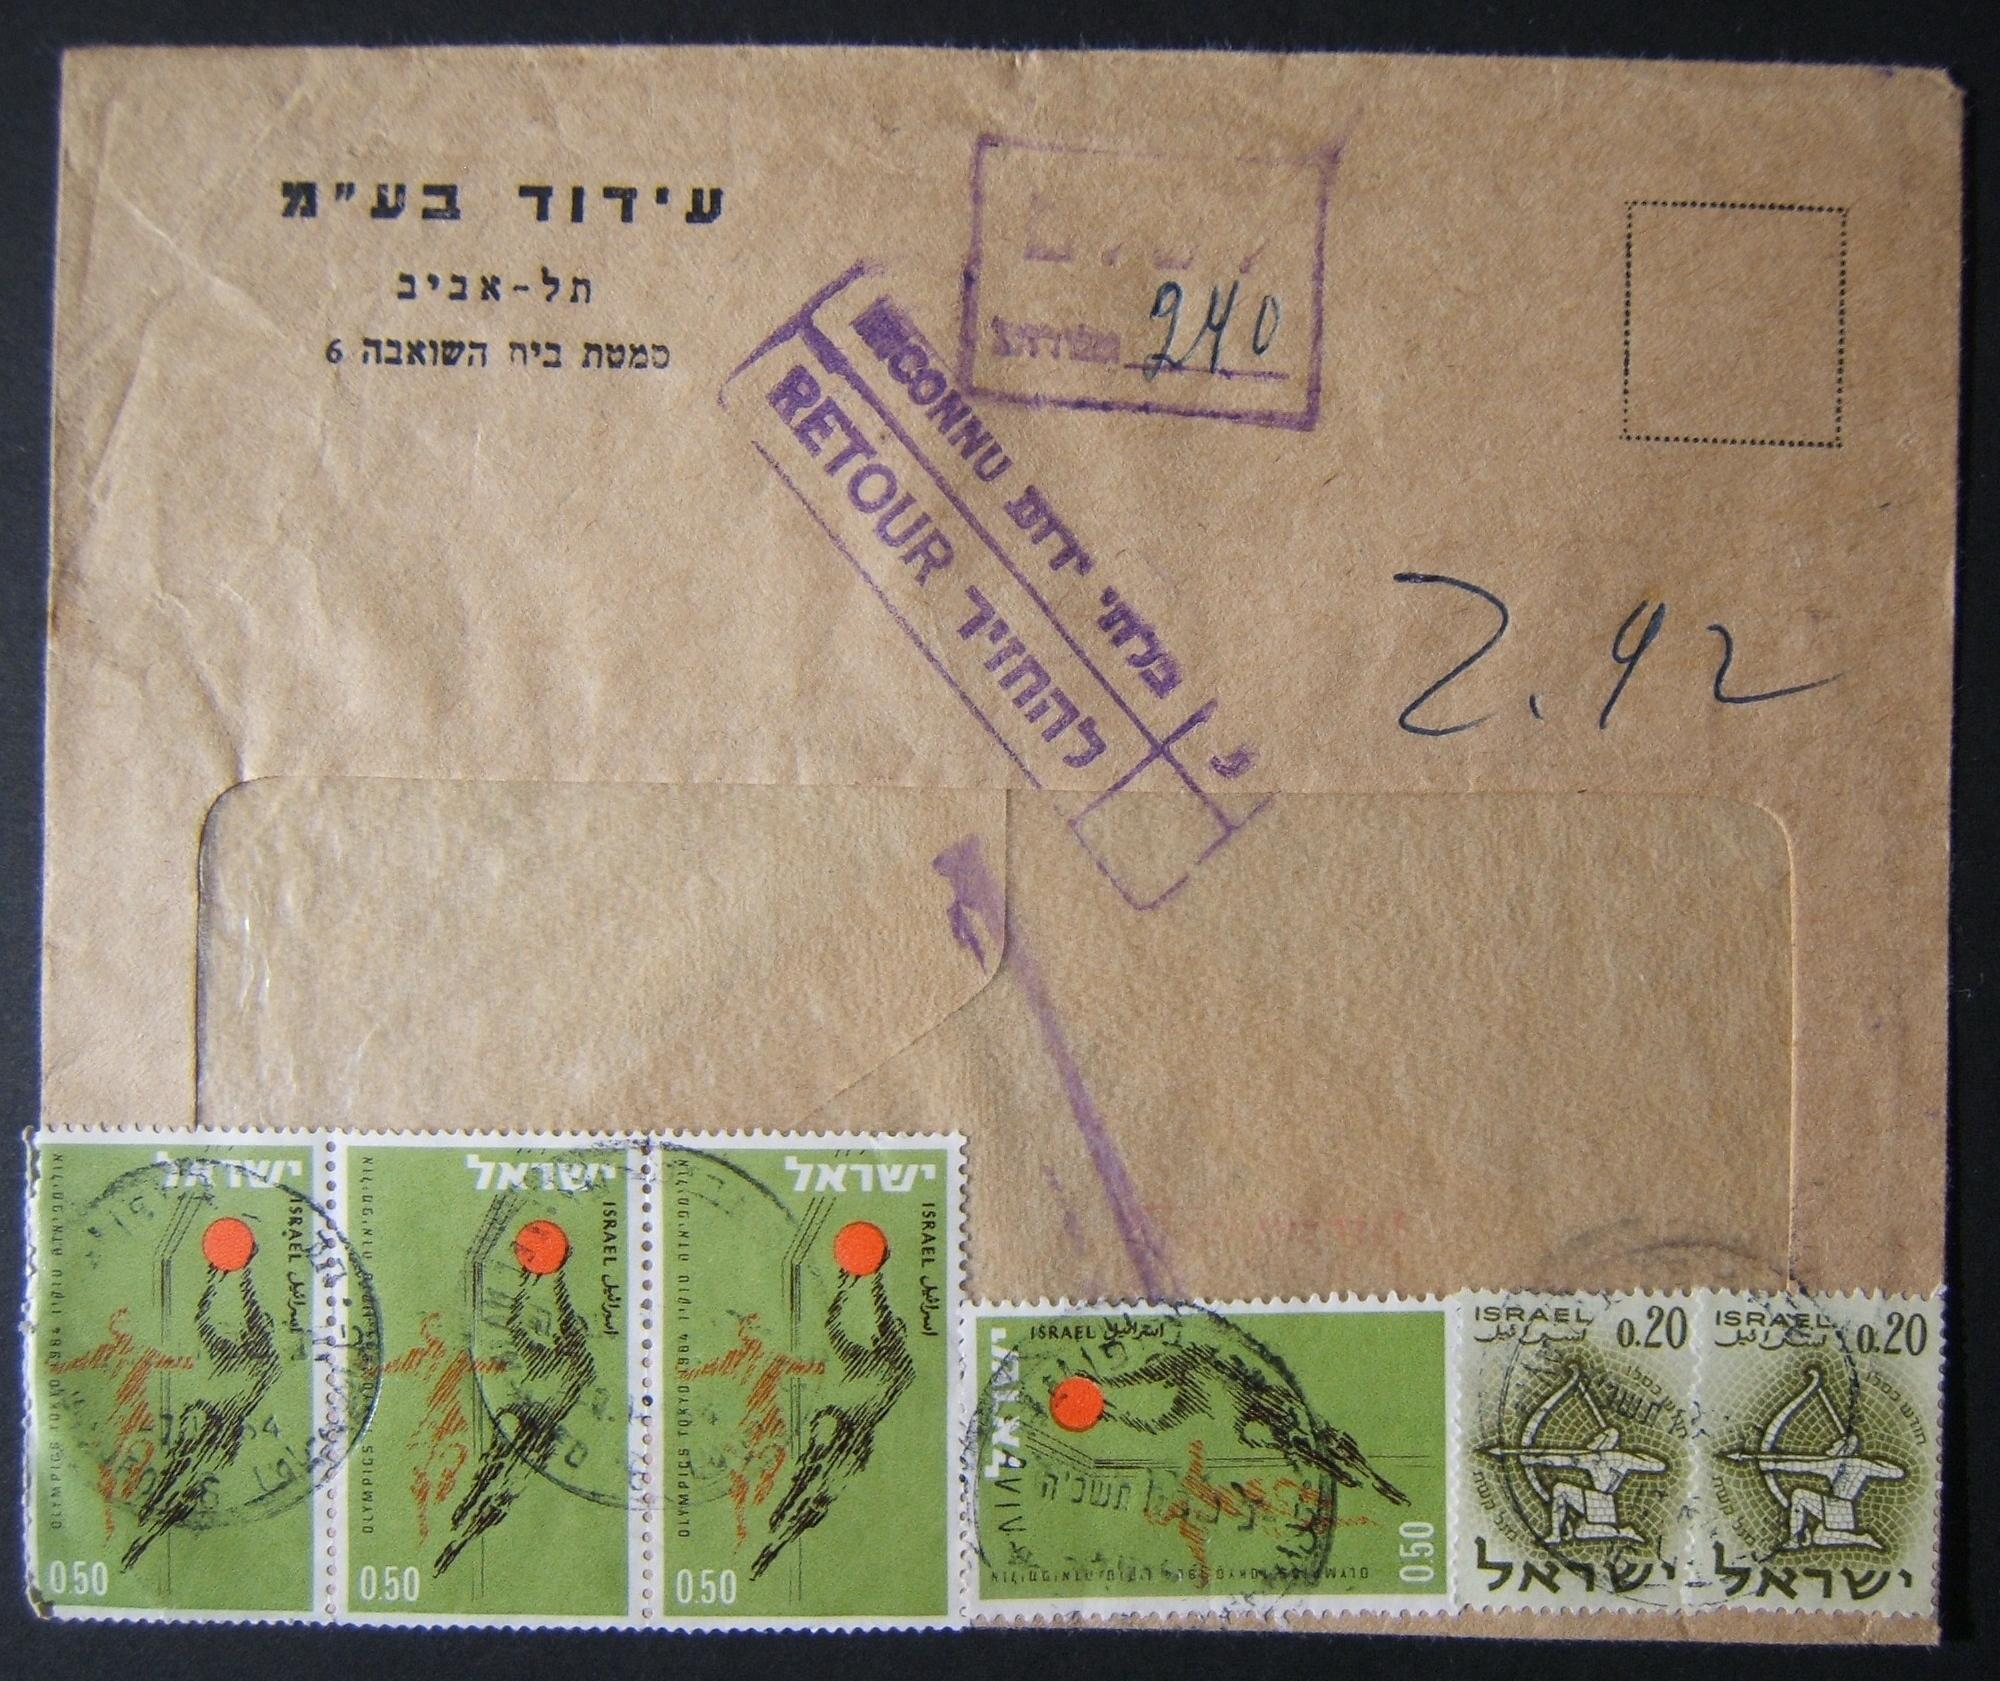 1964 domestic 'top of the pile' taxed franking: Dec 1964 printed matter commercial cover ex TLV branch of Idud Ltd. franked by machine prepayment at the DO-11 period 8 Ag PM rate (